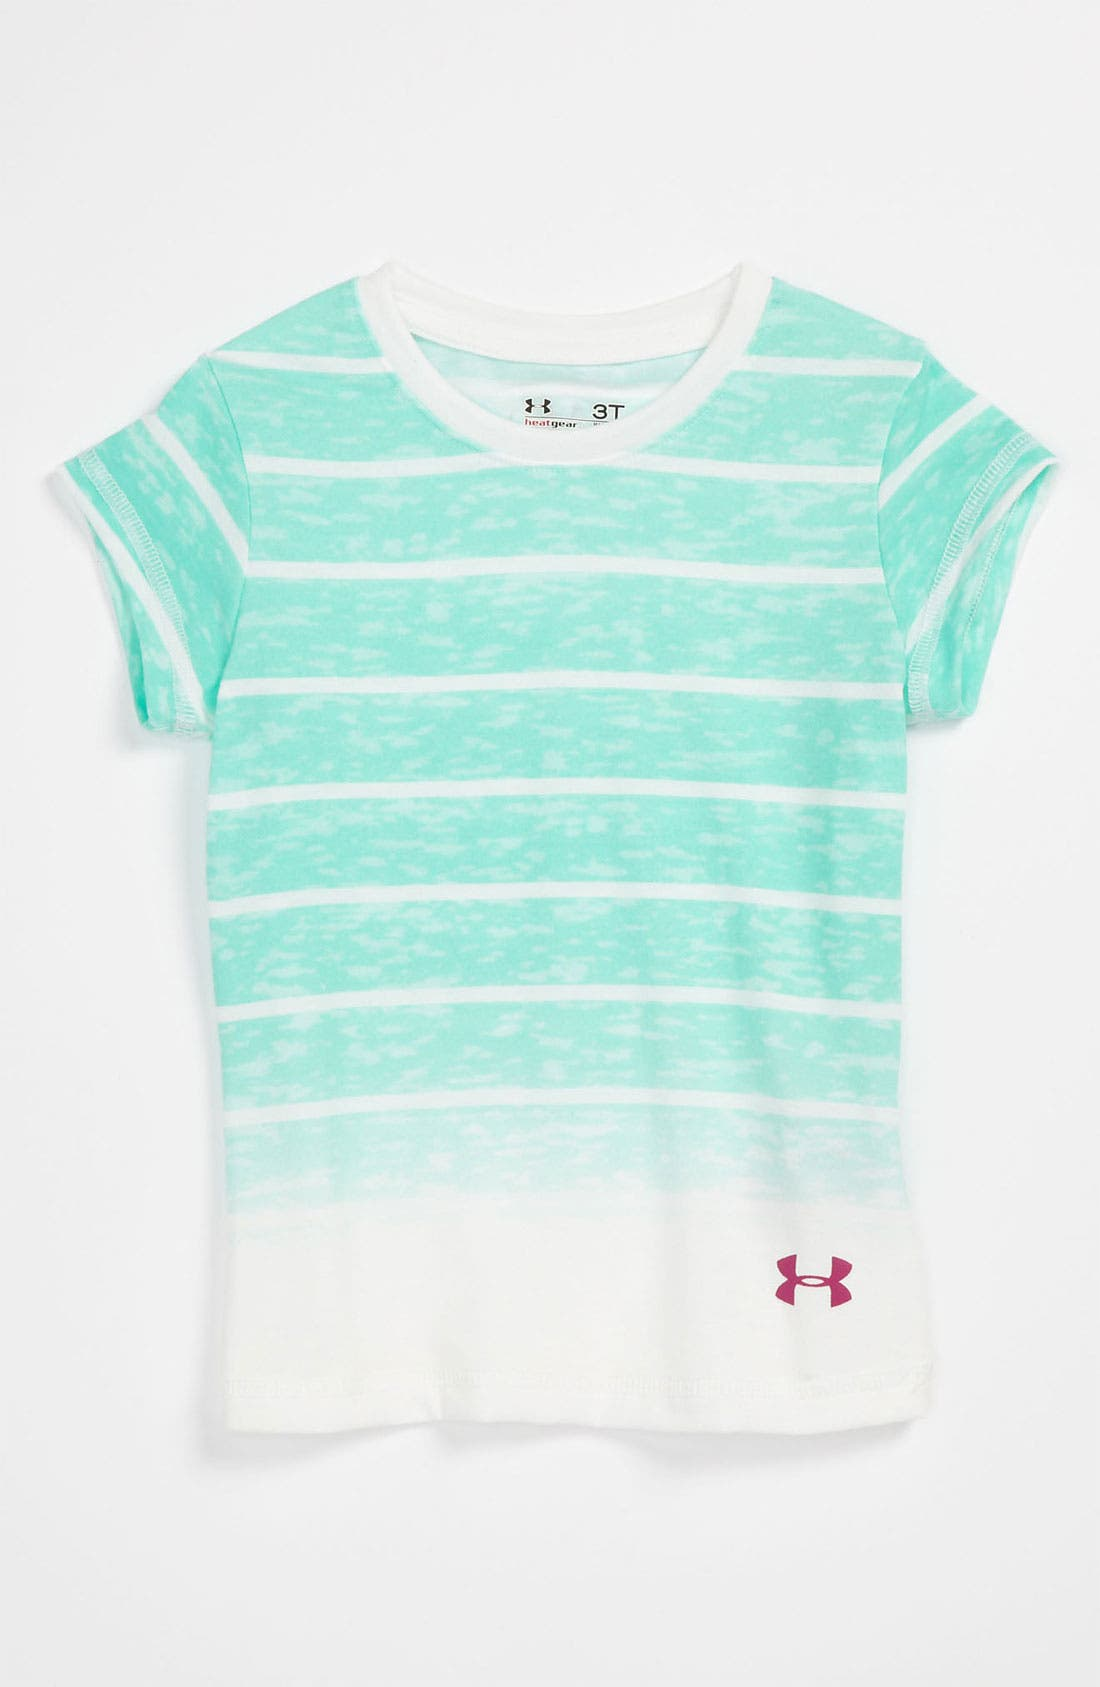 Alternate Image 1 Selected - Under Armour HeatGear™ Tee (Toddler)